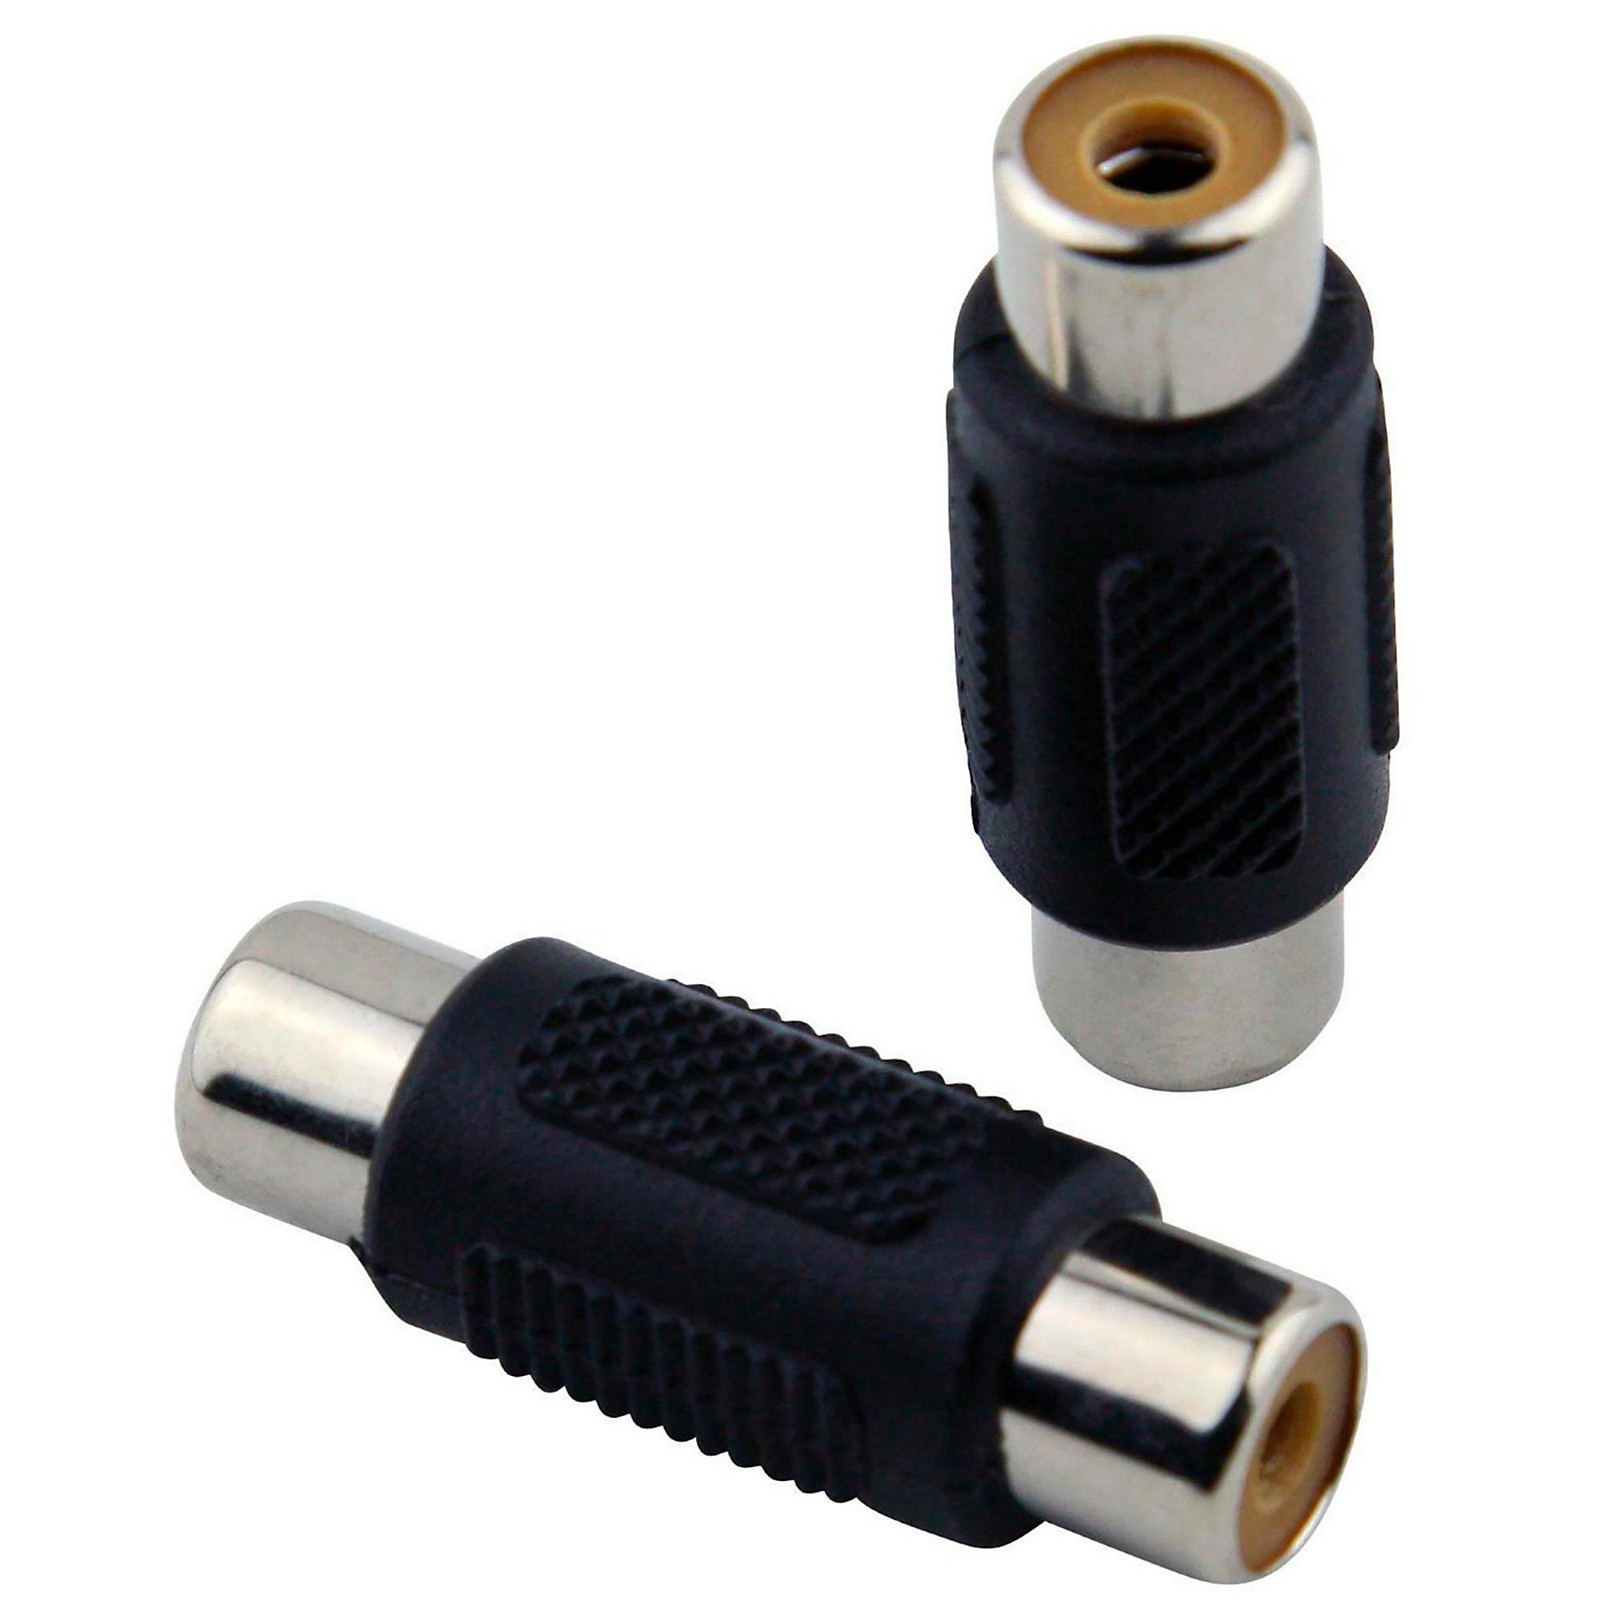 Pig Hog Solutions RCA(F) to RCA(F) Mono Adapter (2-Pack)